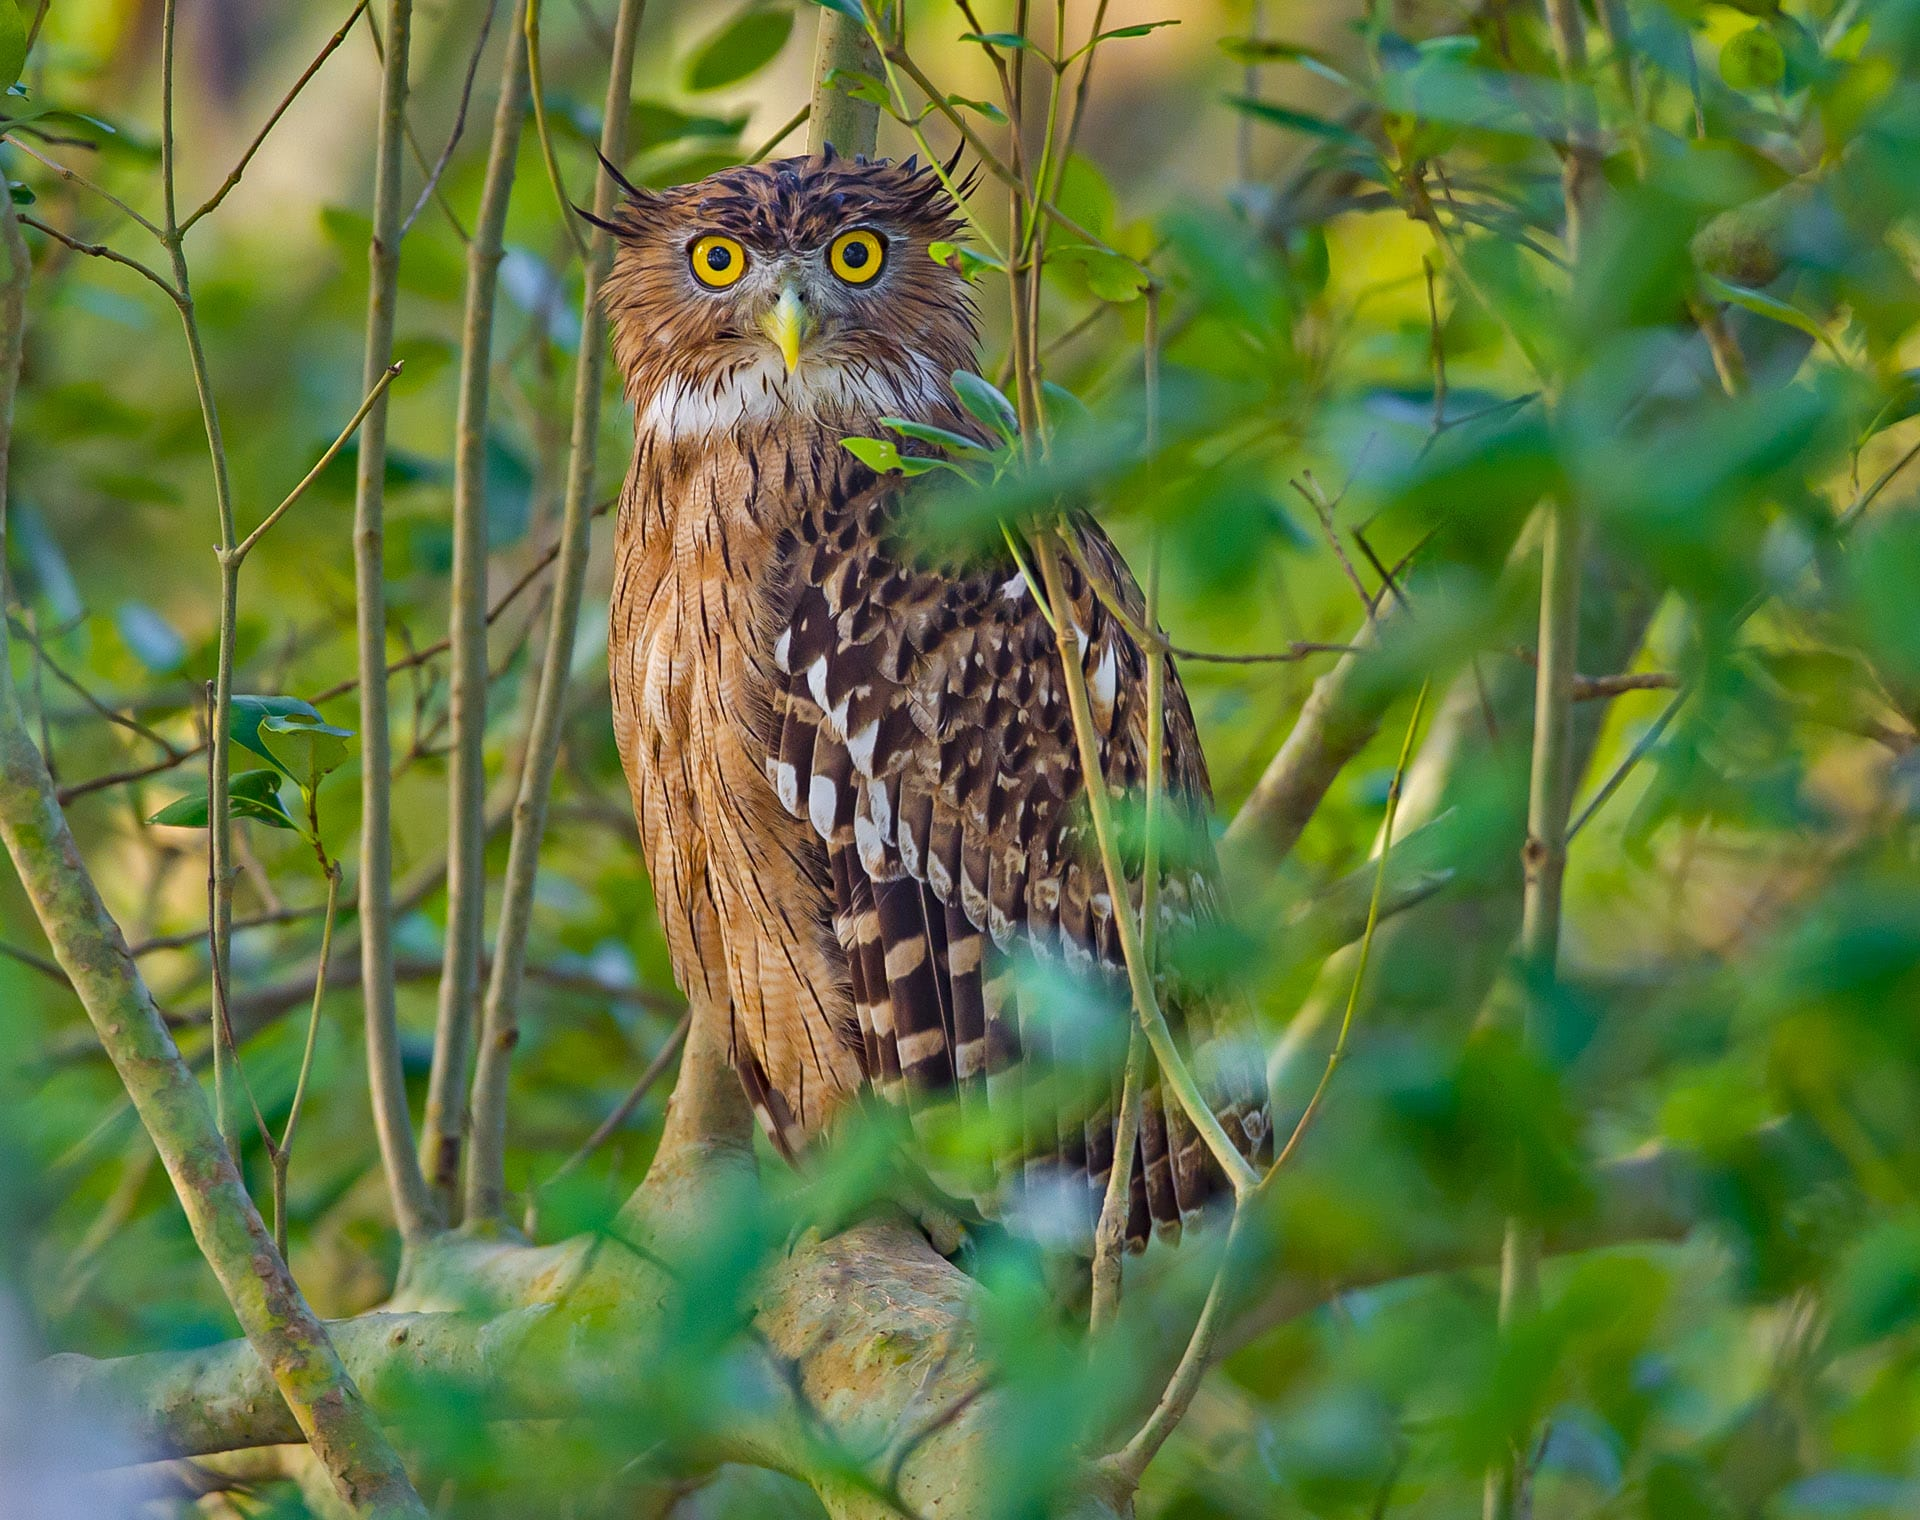 """Fish-owls are a large species always found near waterbodies. They prefer a diet of fish, and will sit at a vantage point keenly observing shallow waters for prey like fish and amphibians. Both the brown fish-owl (Ketupa zeylonensis) (top) and the buffy fish-owl (Ketupa ketupu) (above) have streaked brown-black feathers, a pale breast, tufts on their ears, and haunting yellow eyes. The key difference lies in their distribution. """"Within Indian limits, the range of the buffy fish-owl is restricted only to the mangroves of the Sundarbans, while the brown fish-owl is more widespread, found everywhere from the south to the Northeast,"""" says Dalvi."""